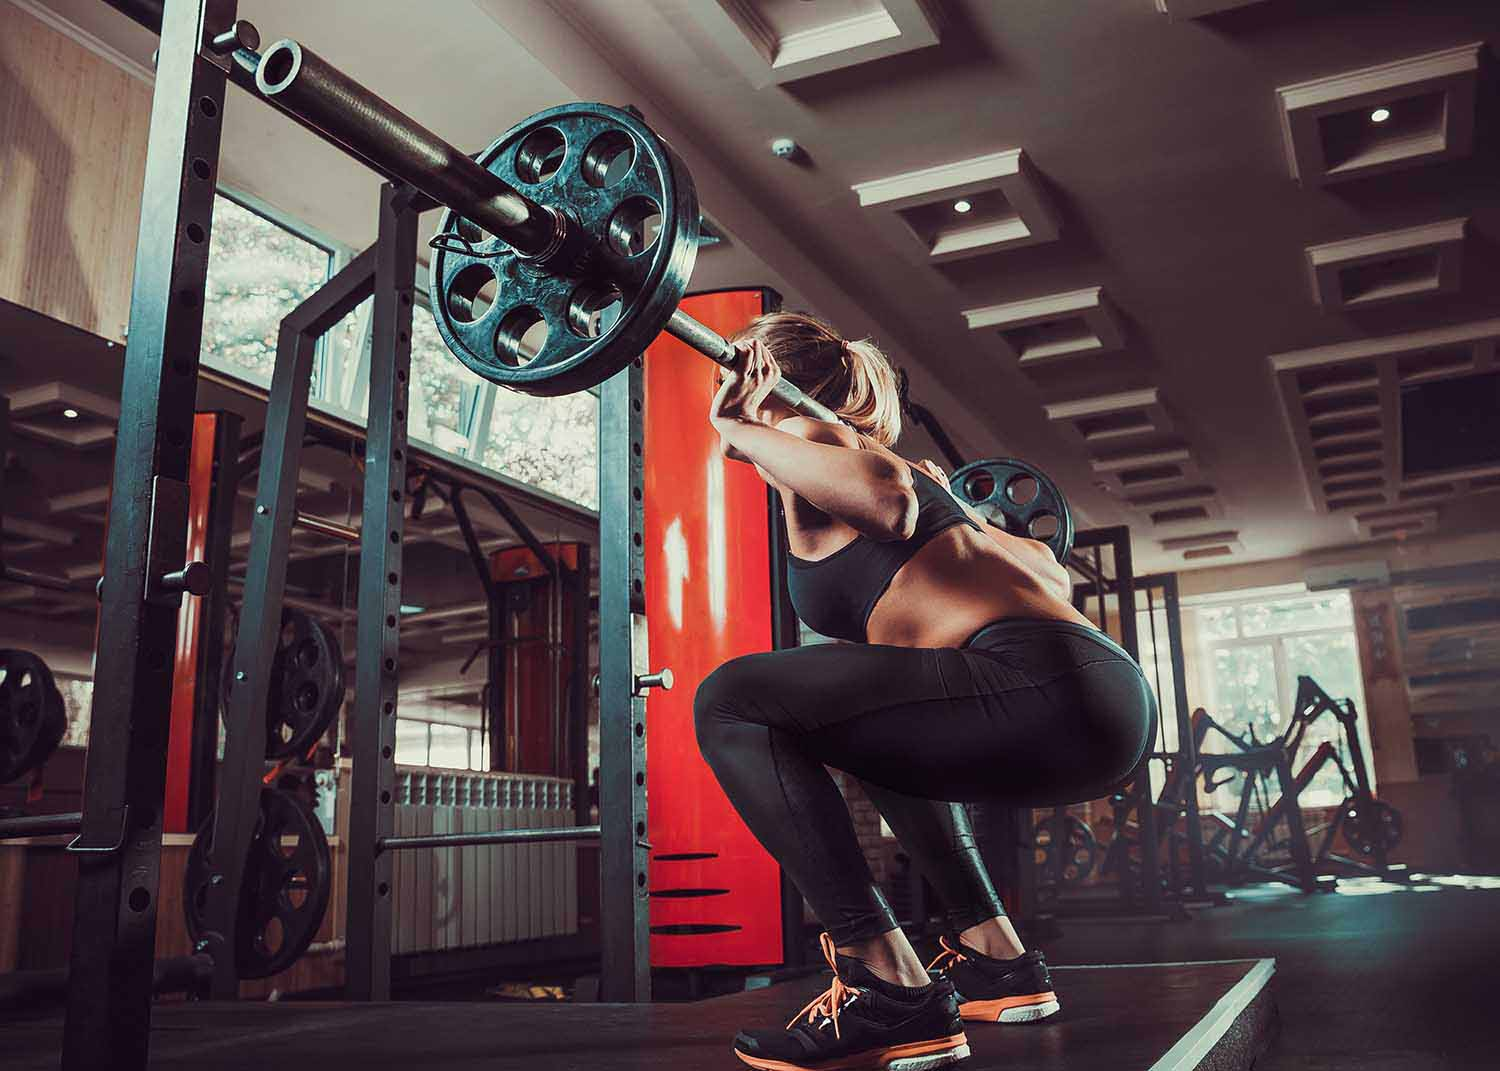 Envisagym Personal Training Gym Ranelagh Dublin From €139 Per Month Ladies Learn To Lift Woman Squat Bar